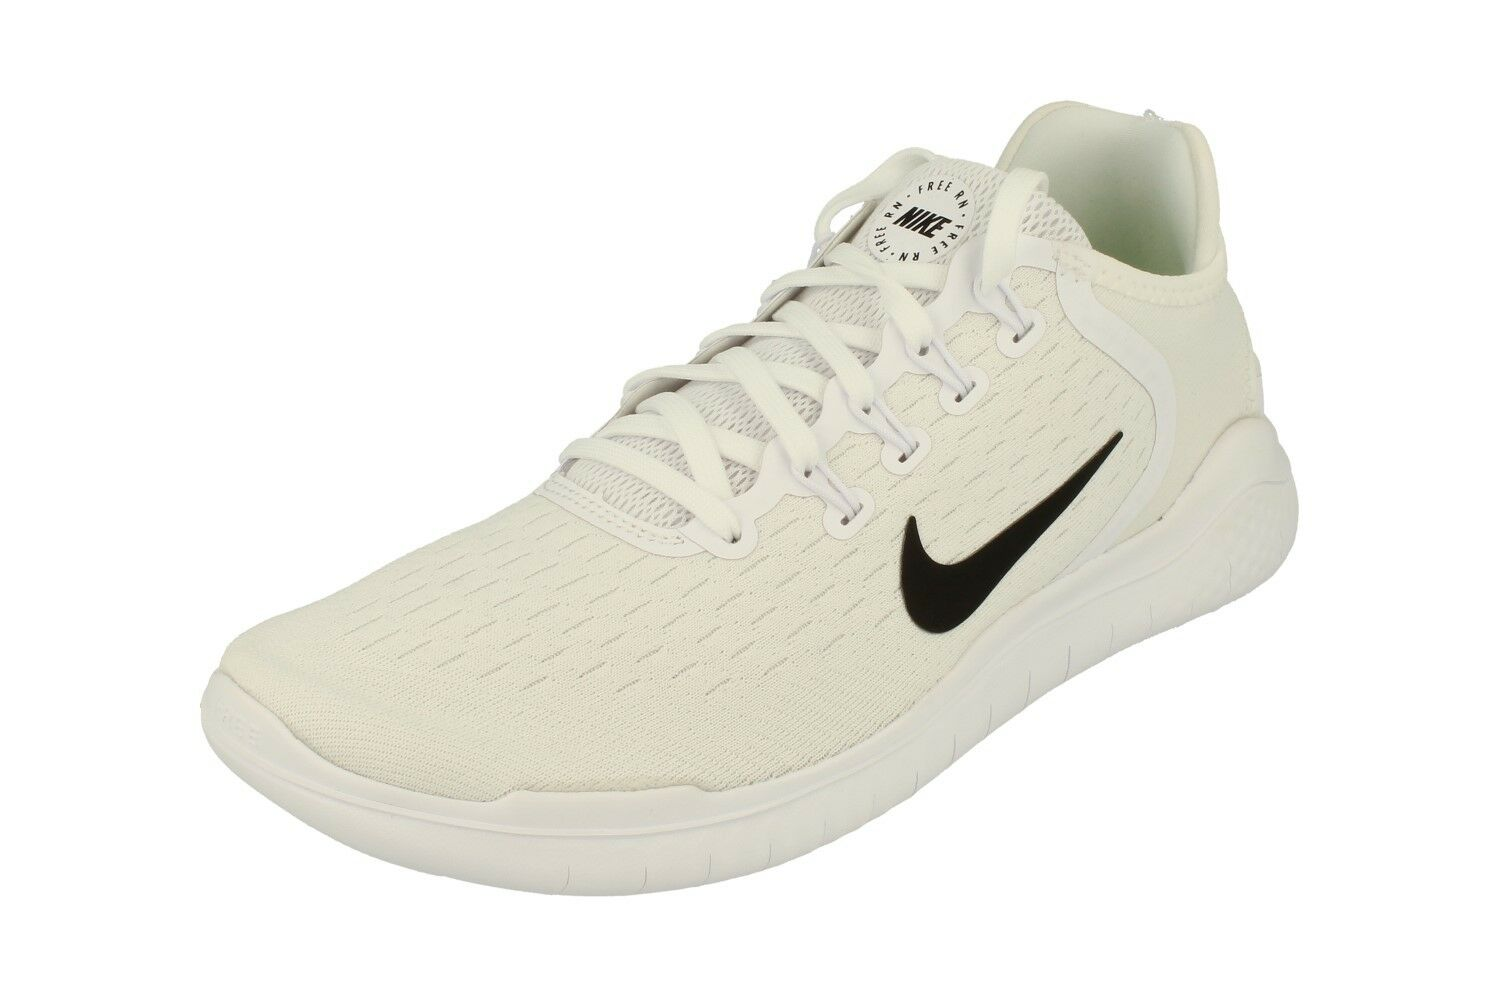 Nike Free RN 2018 Mens Running Trainers 942836 Sneakers shoes 100